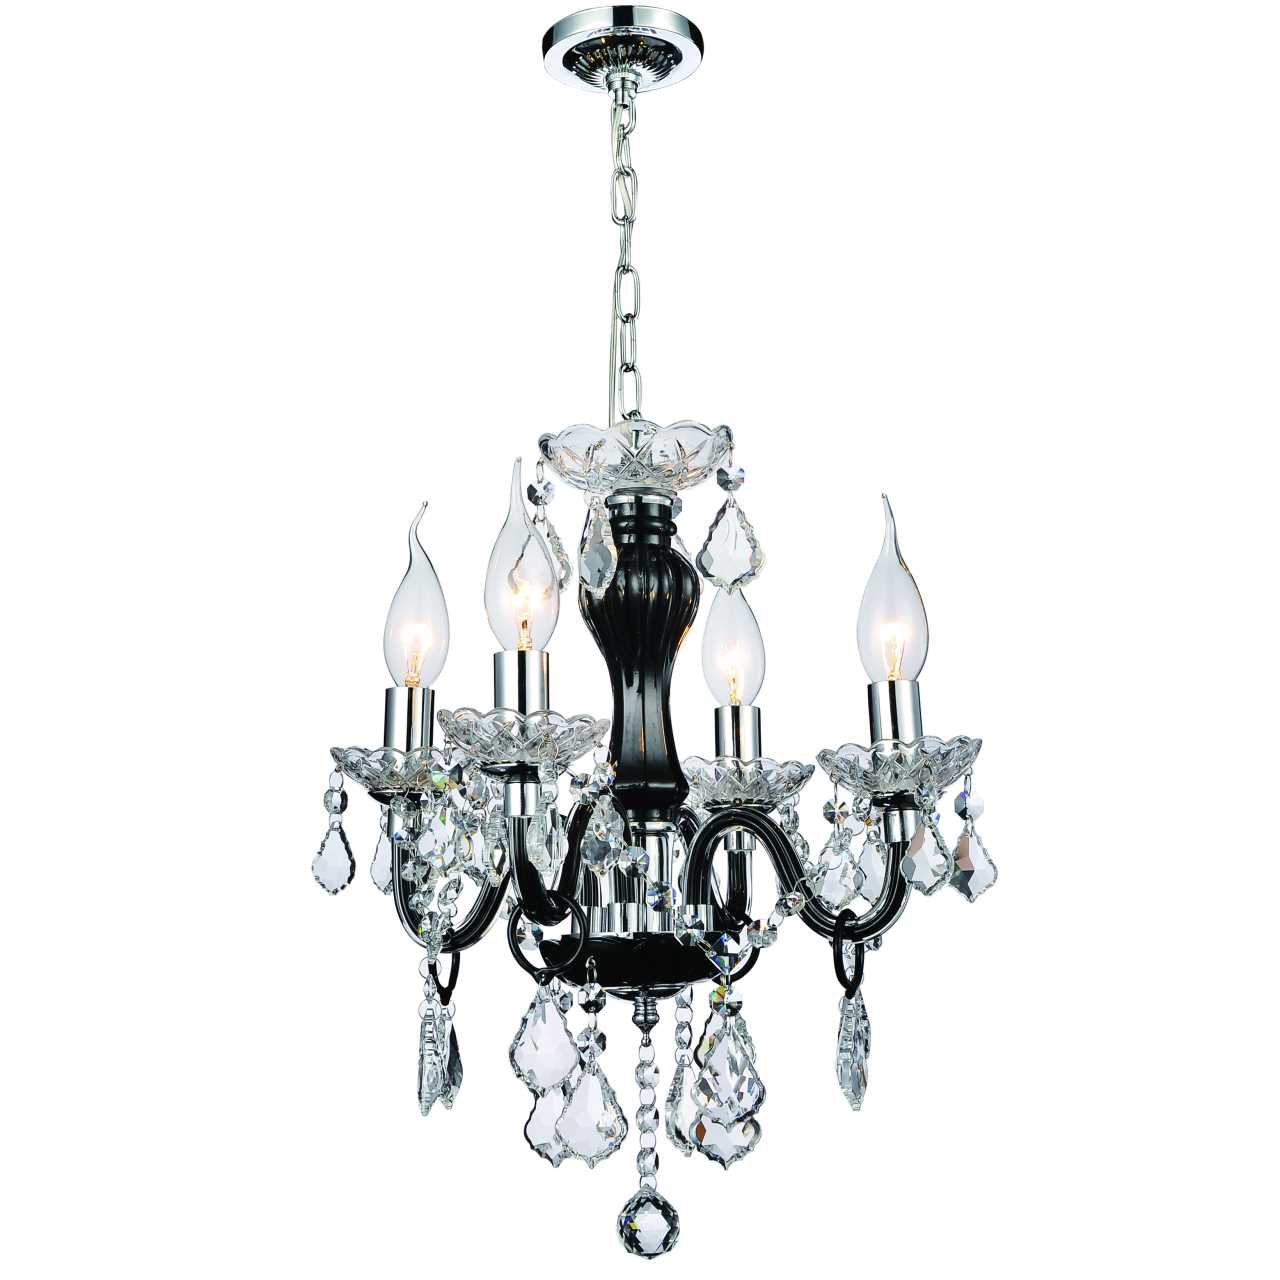 Brizzo lighting stores 14 victorian traditional crystal round mini picture of 14 victorian traditional crystal round mini chandelier jet black frame clear plates and arubaitofo Images